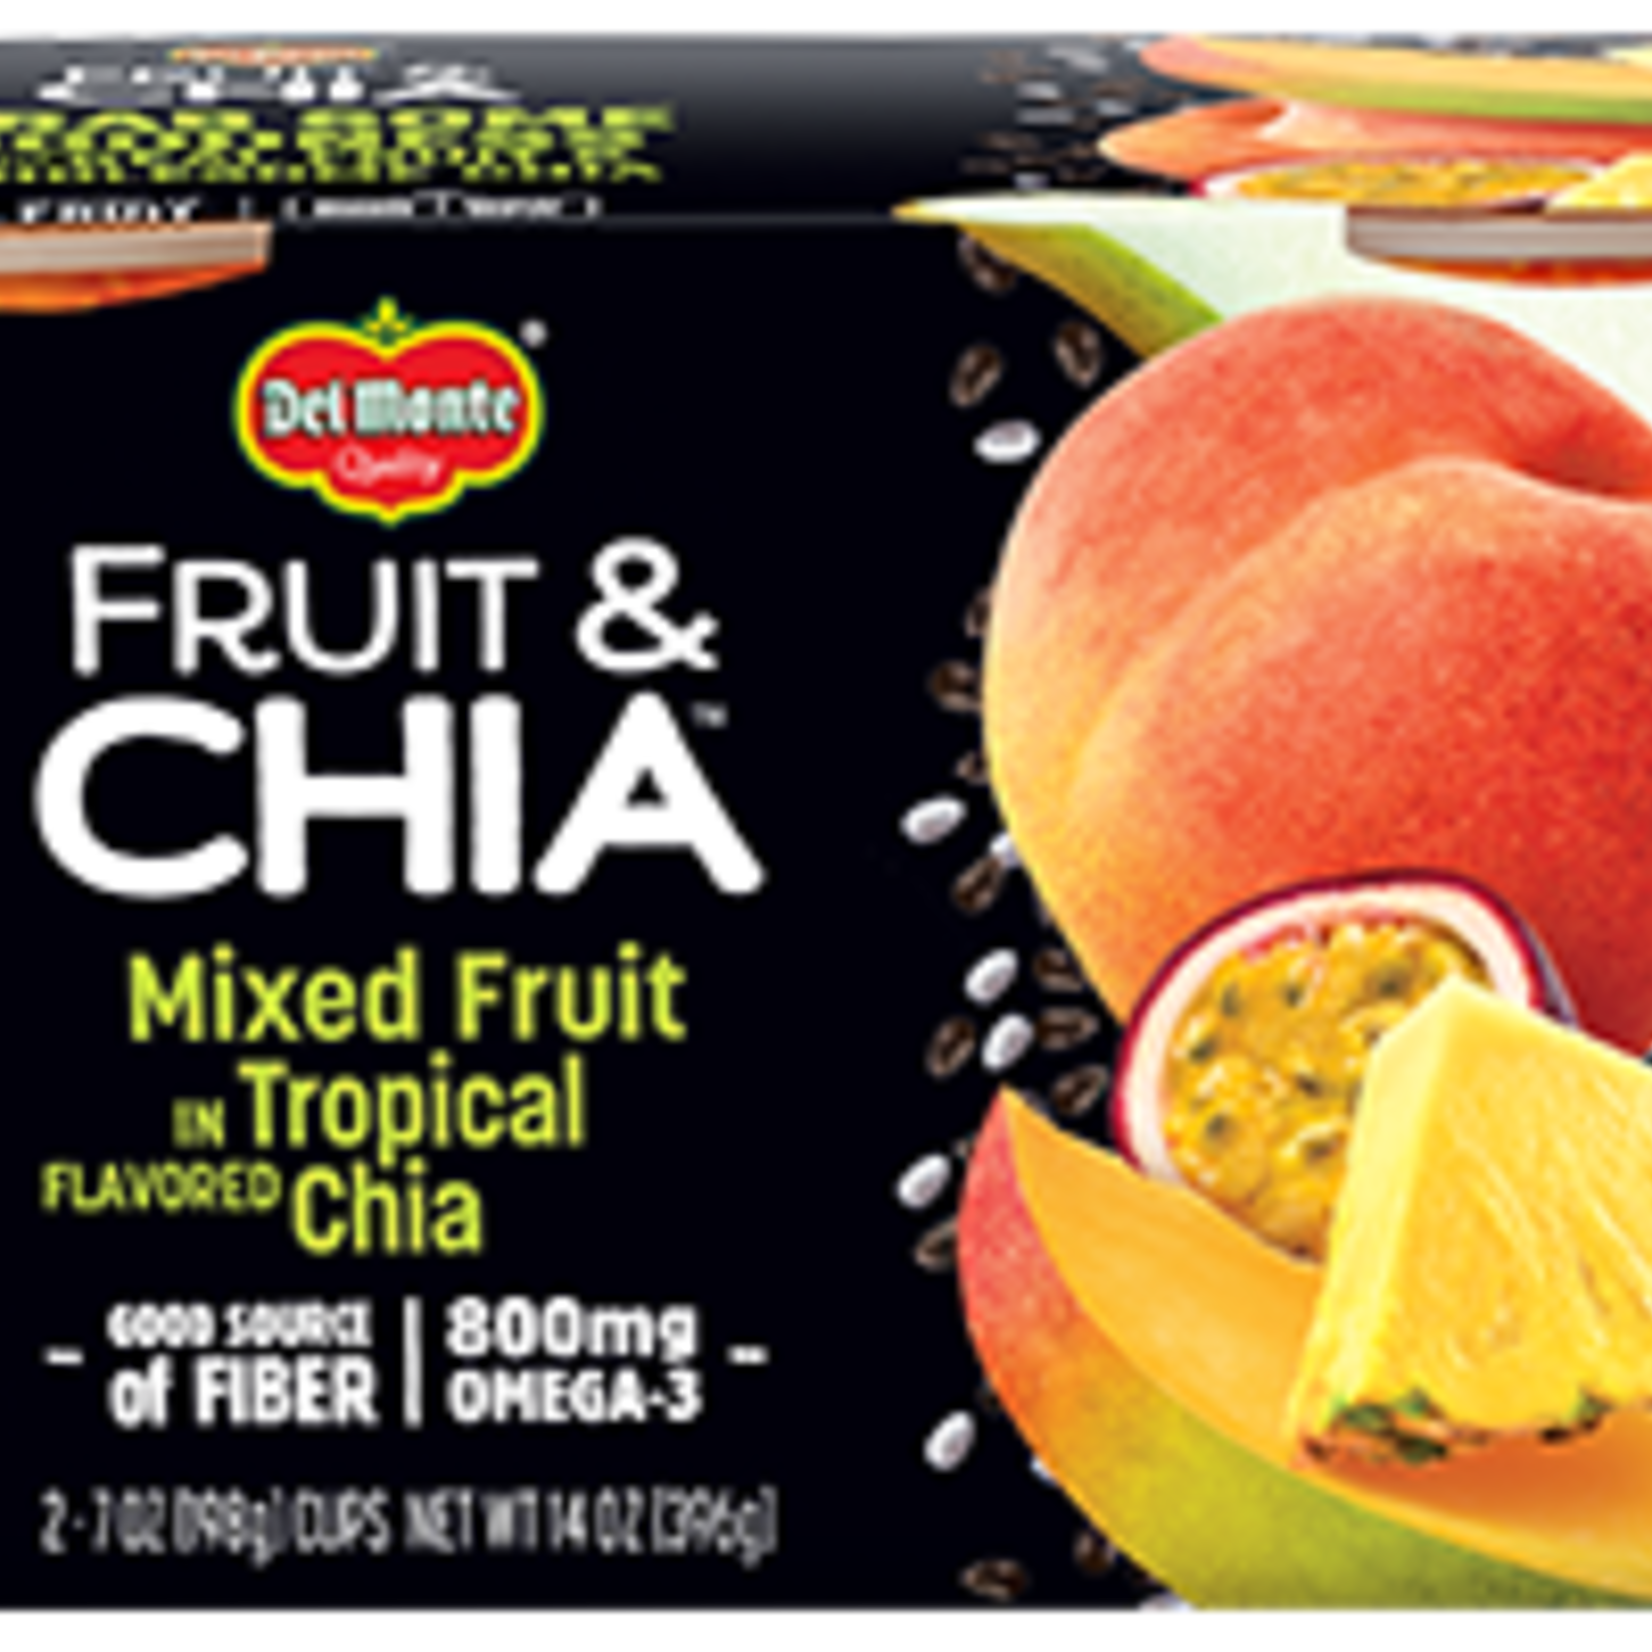 Del Monte Fruit & Chia Mixed Fruit in Topical Chia 2x198g *Case of 6*